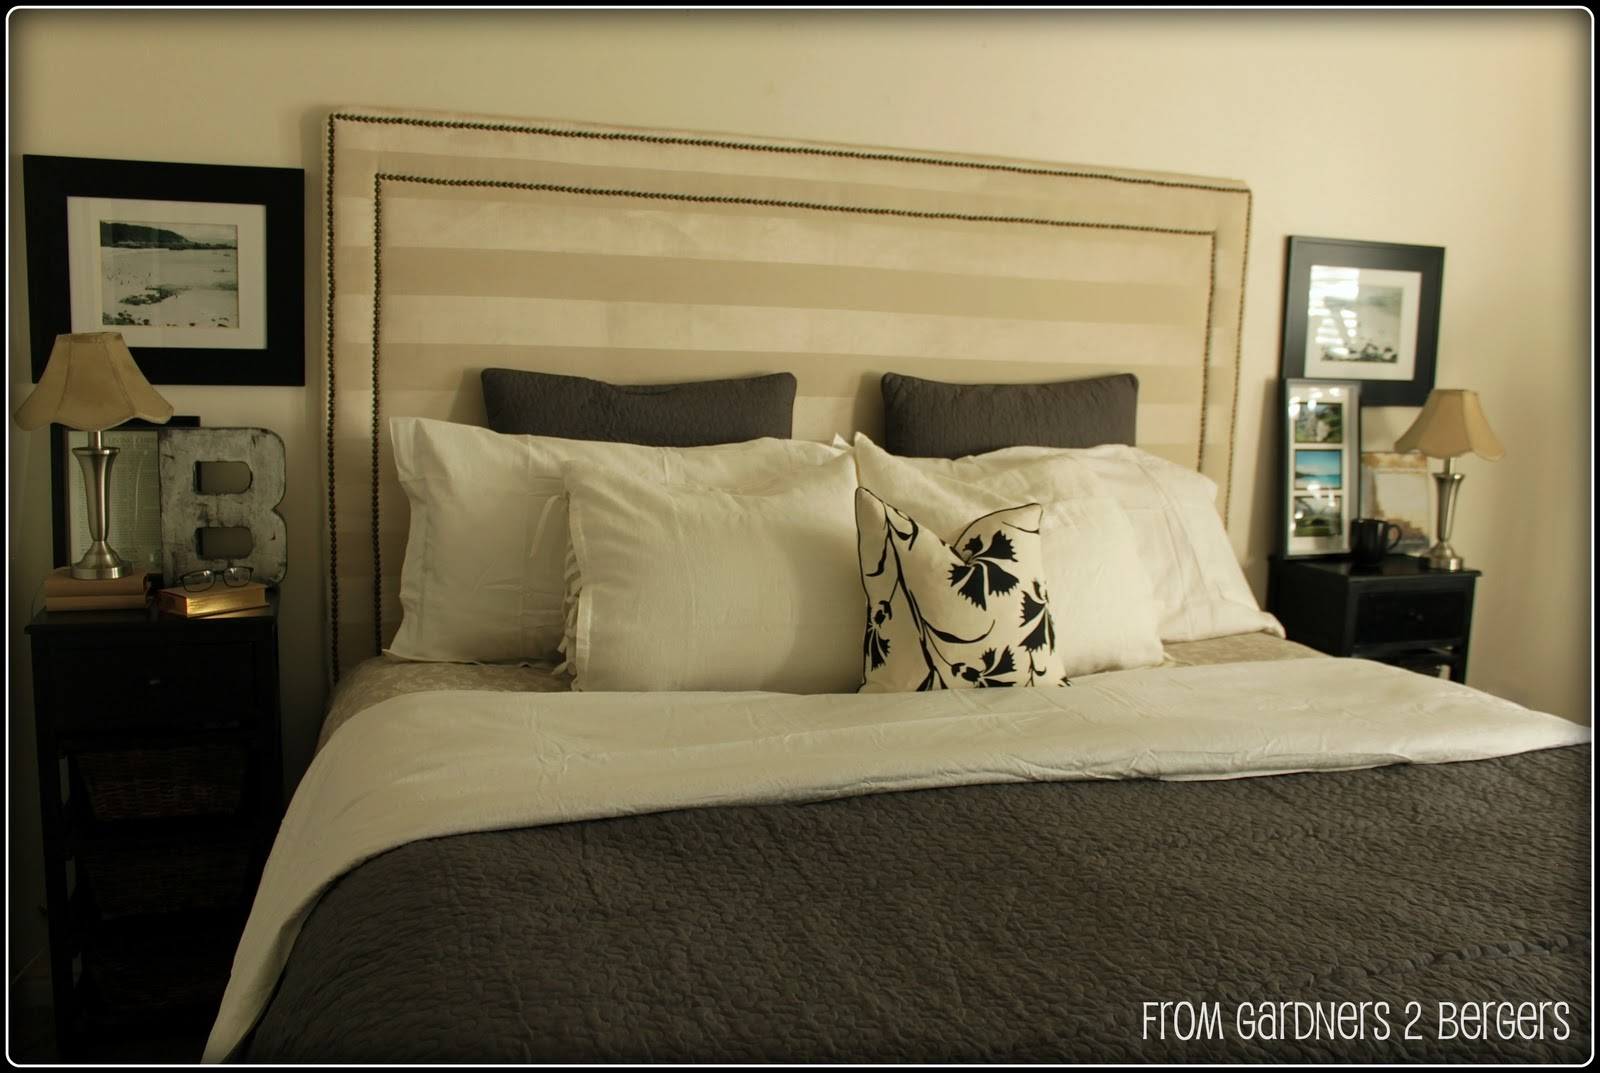 Expensive Bedding On The Cheap ✥ Full Size Of Linen Bedding At Restoration  Hardware Bedding